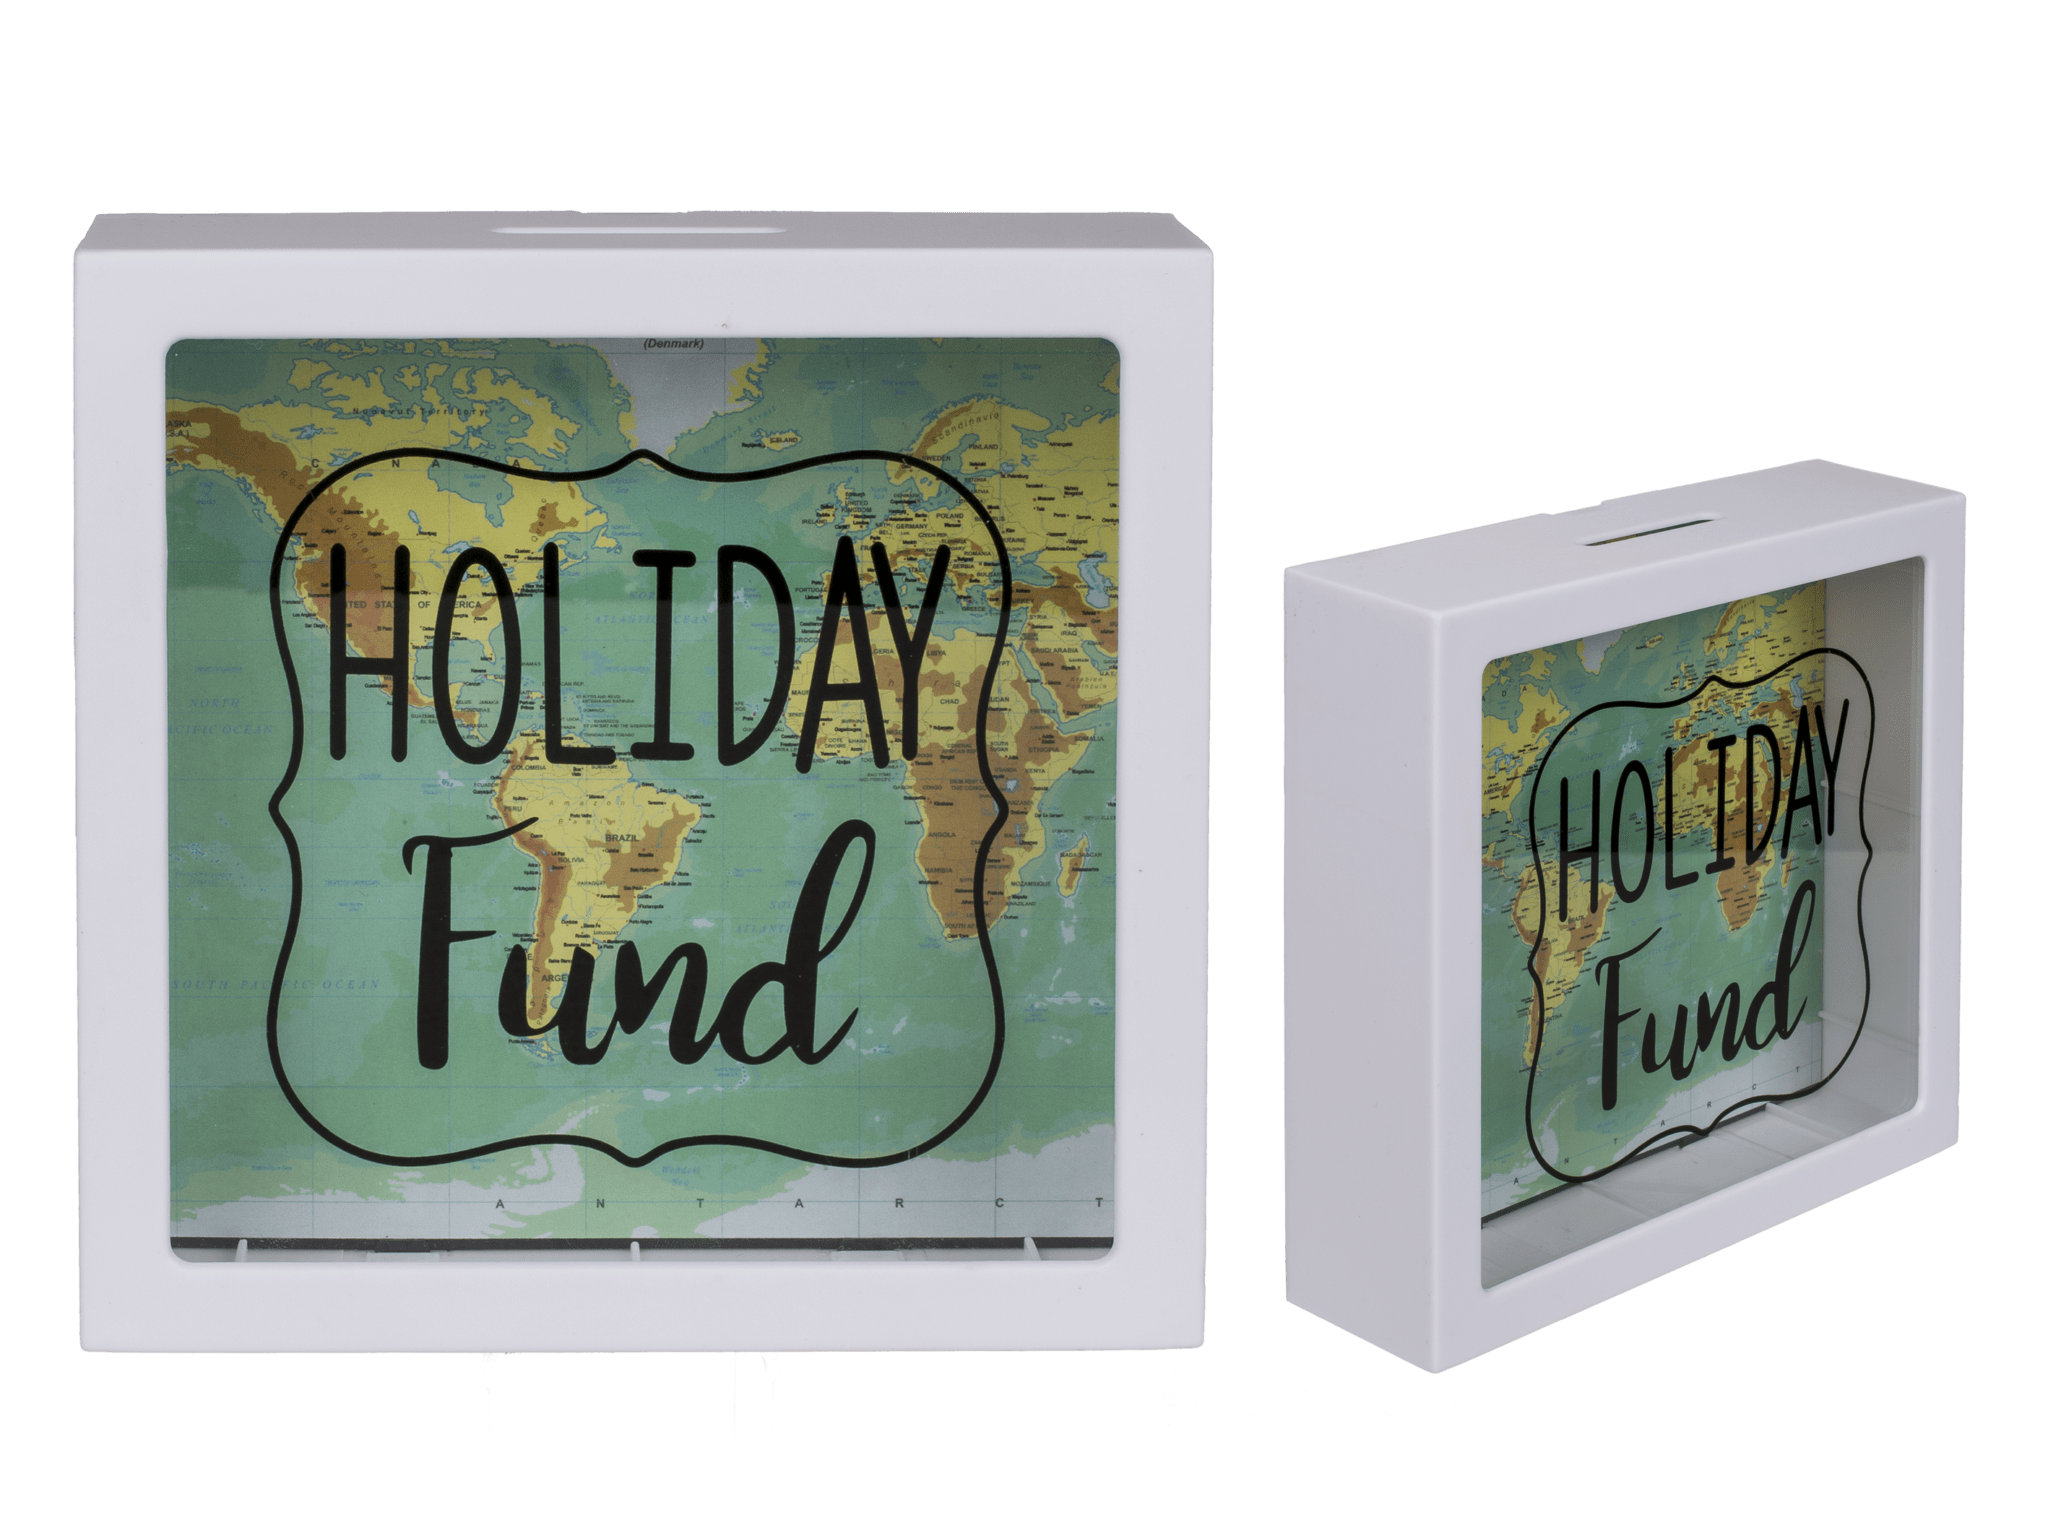 Expo XL Holiday Fund Spaarpot